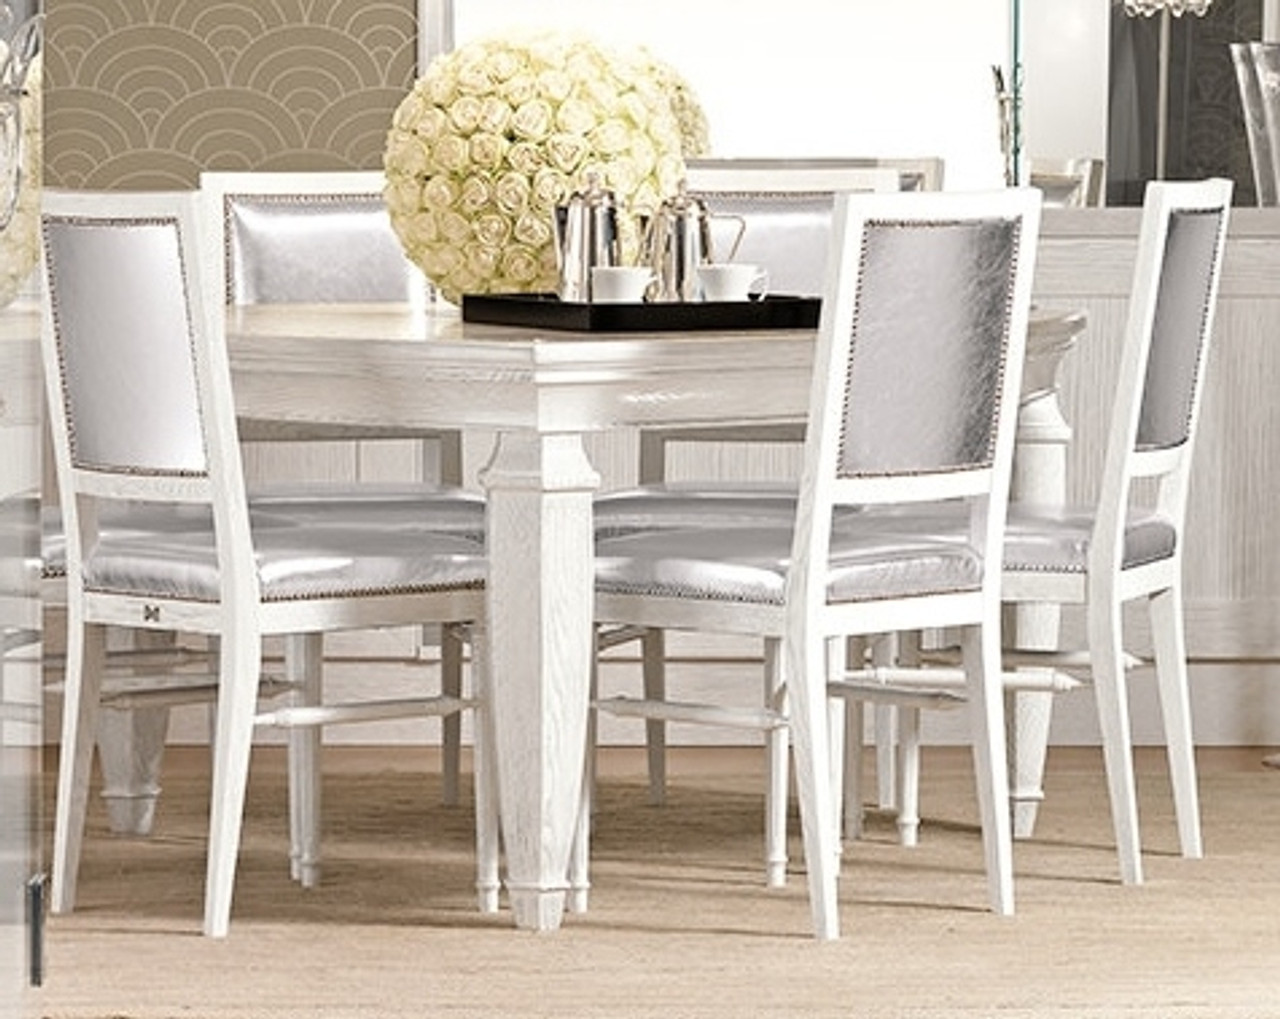 FRENCH KITCHEN & DINING FURNITURE